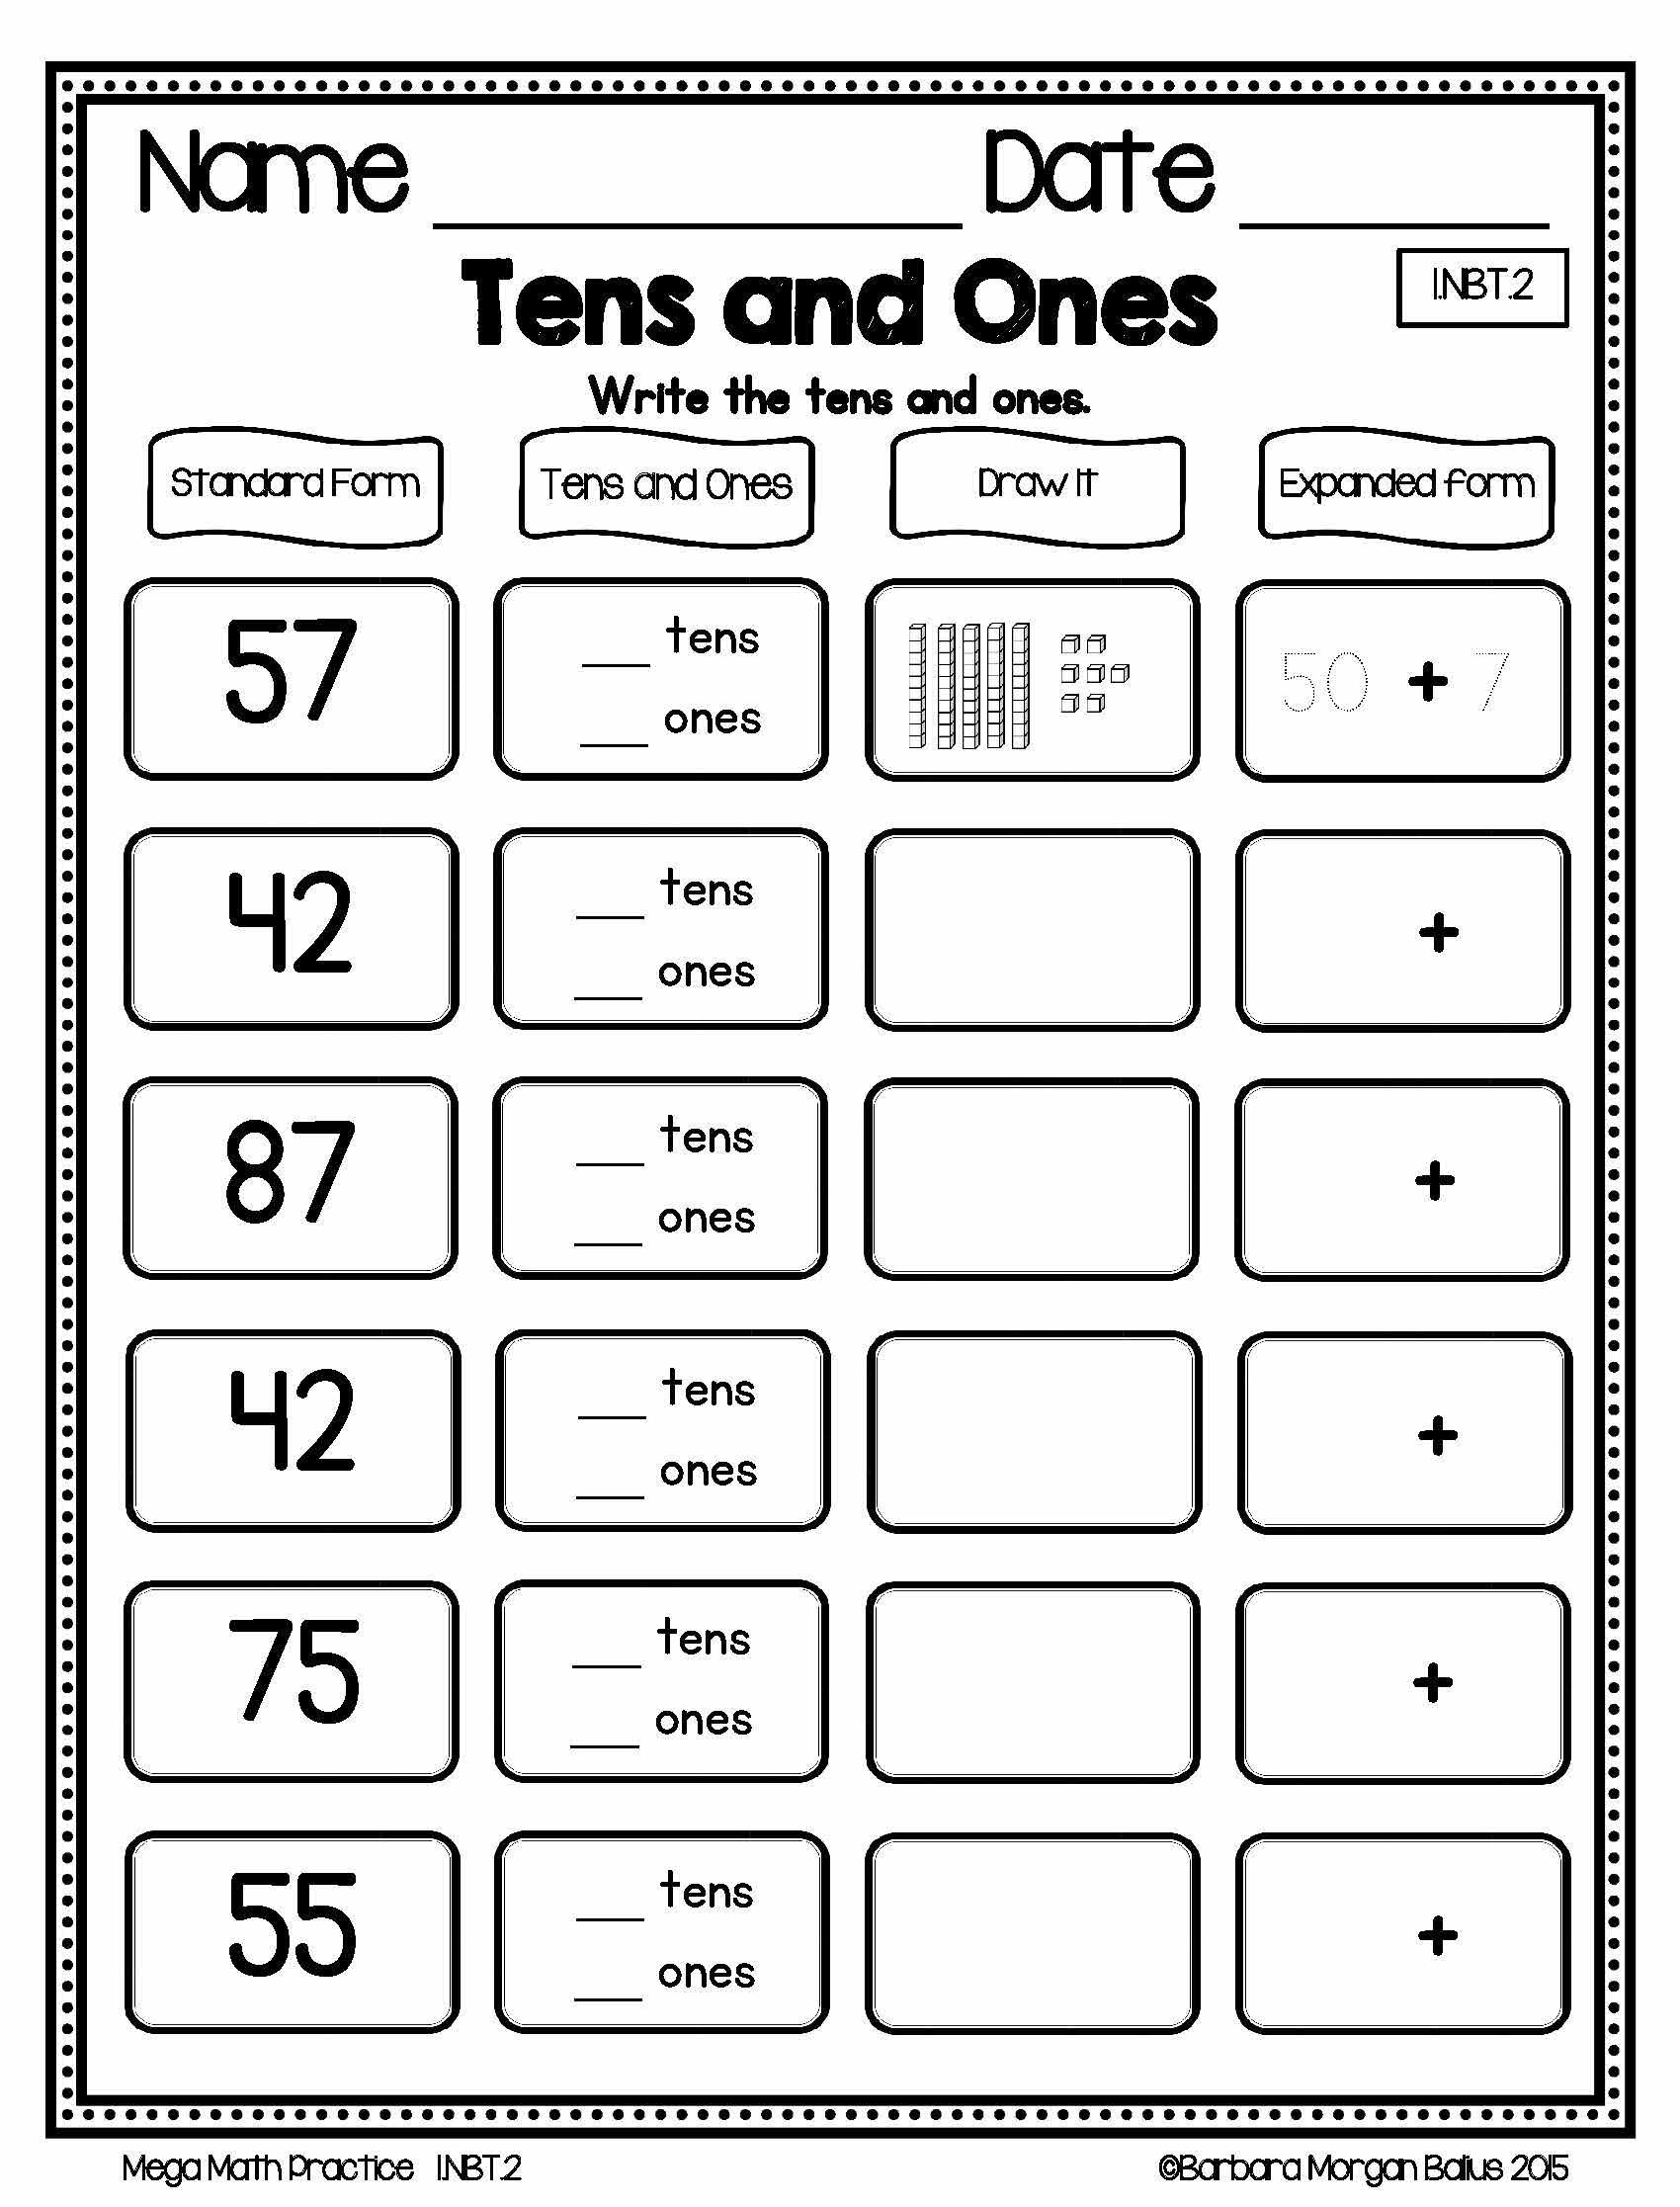 Freebie Preview First Grade Mega Math Practice Young Mathematicians Need Lots Of Practice With New Concepts Ma Mega Math Math Practices Homeschool Math